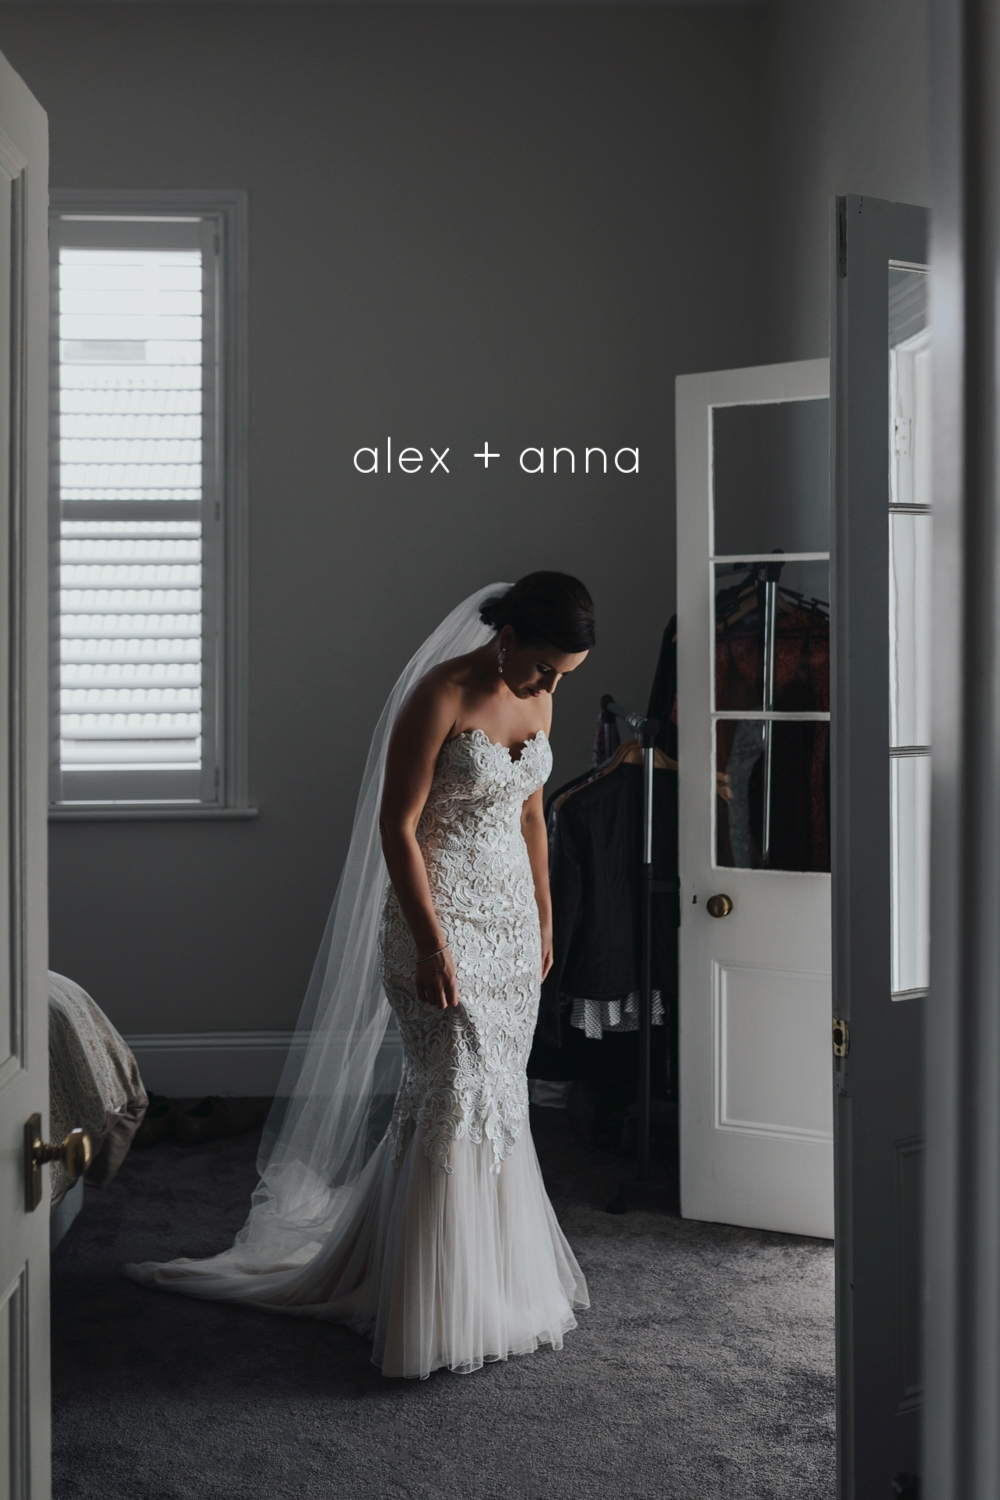 Bride checks her dress in a beautiful house before her wedding day.